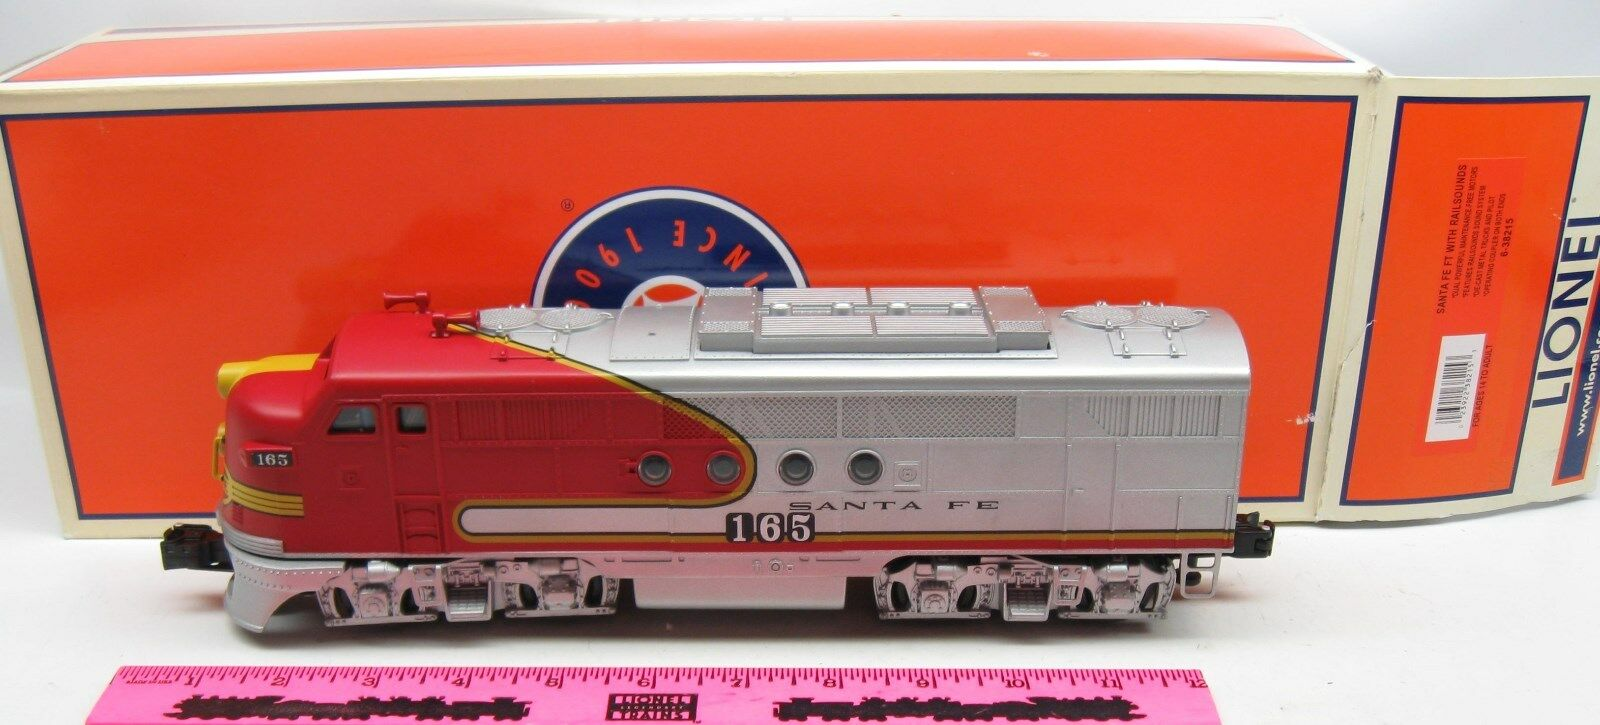 Lionel 6-38215 Santa Fe with railsounds